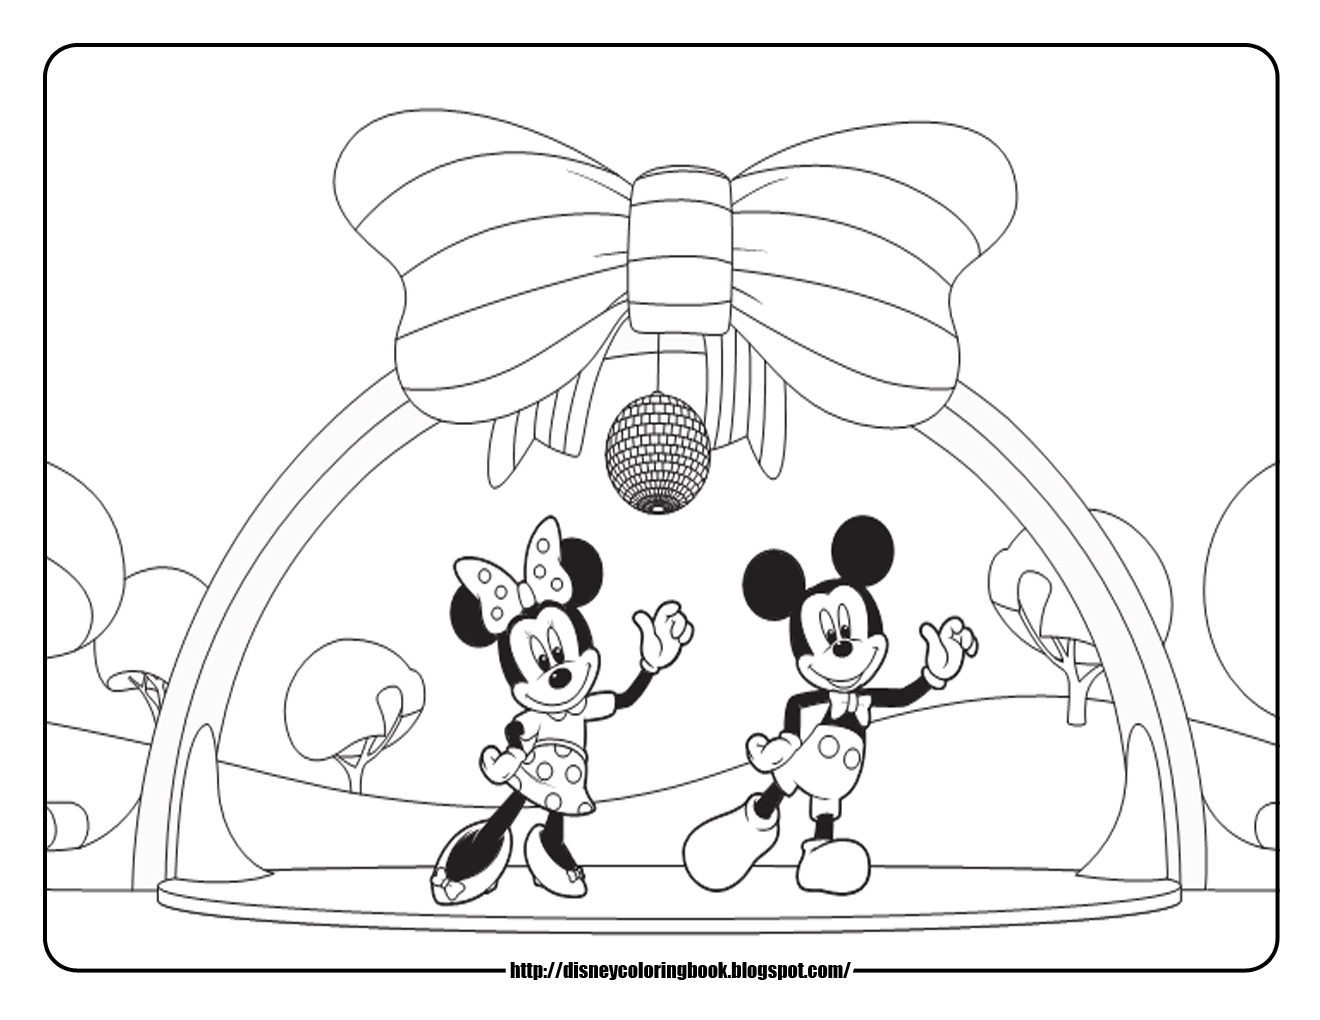 mickey mouse printable coloring pages - 2011 08 01 archive